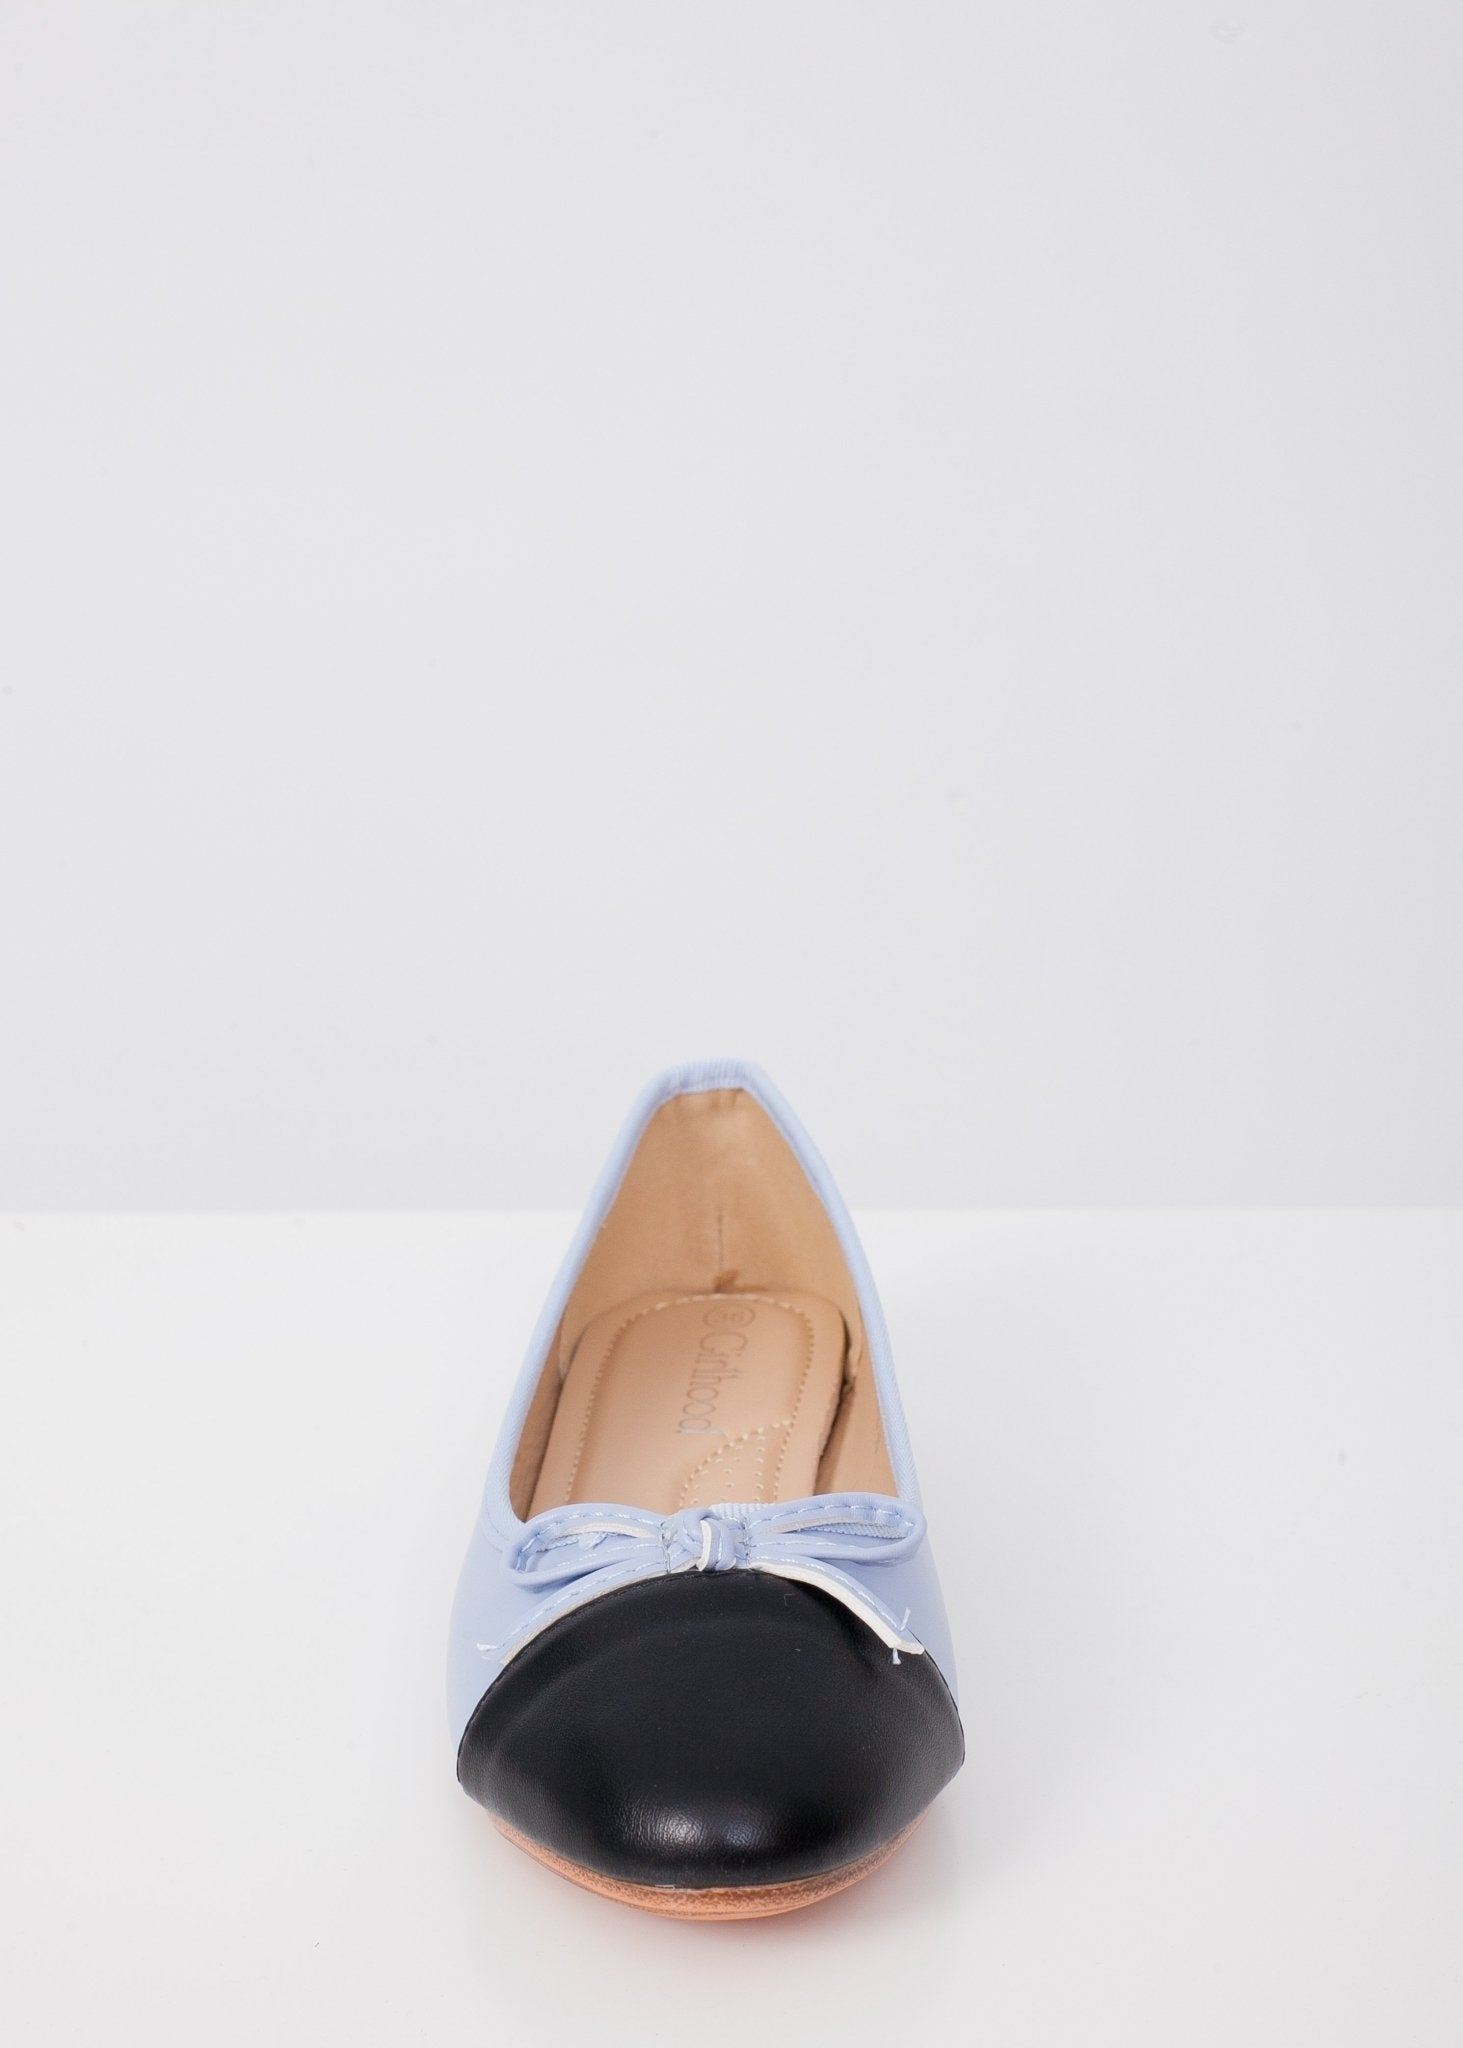 Alice Blue Pumps - The Walk in Wardrobe